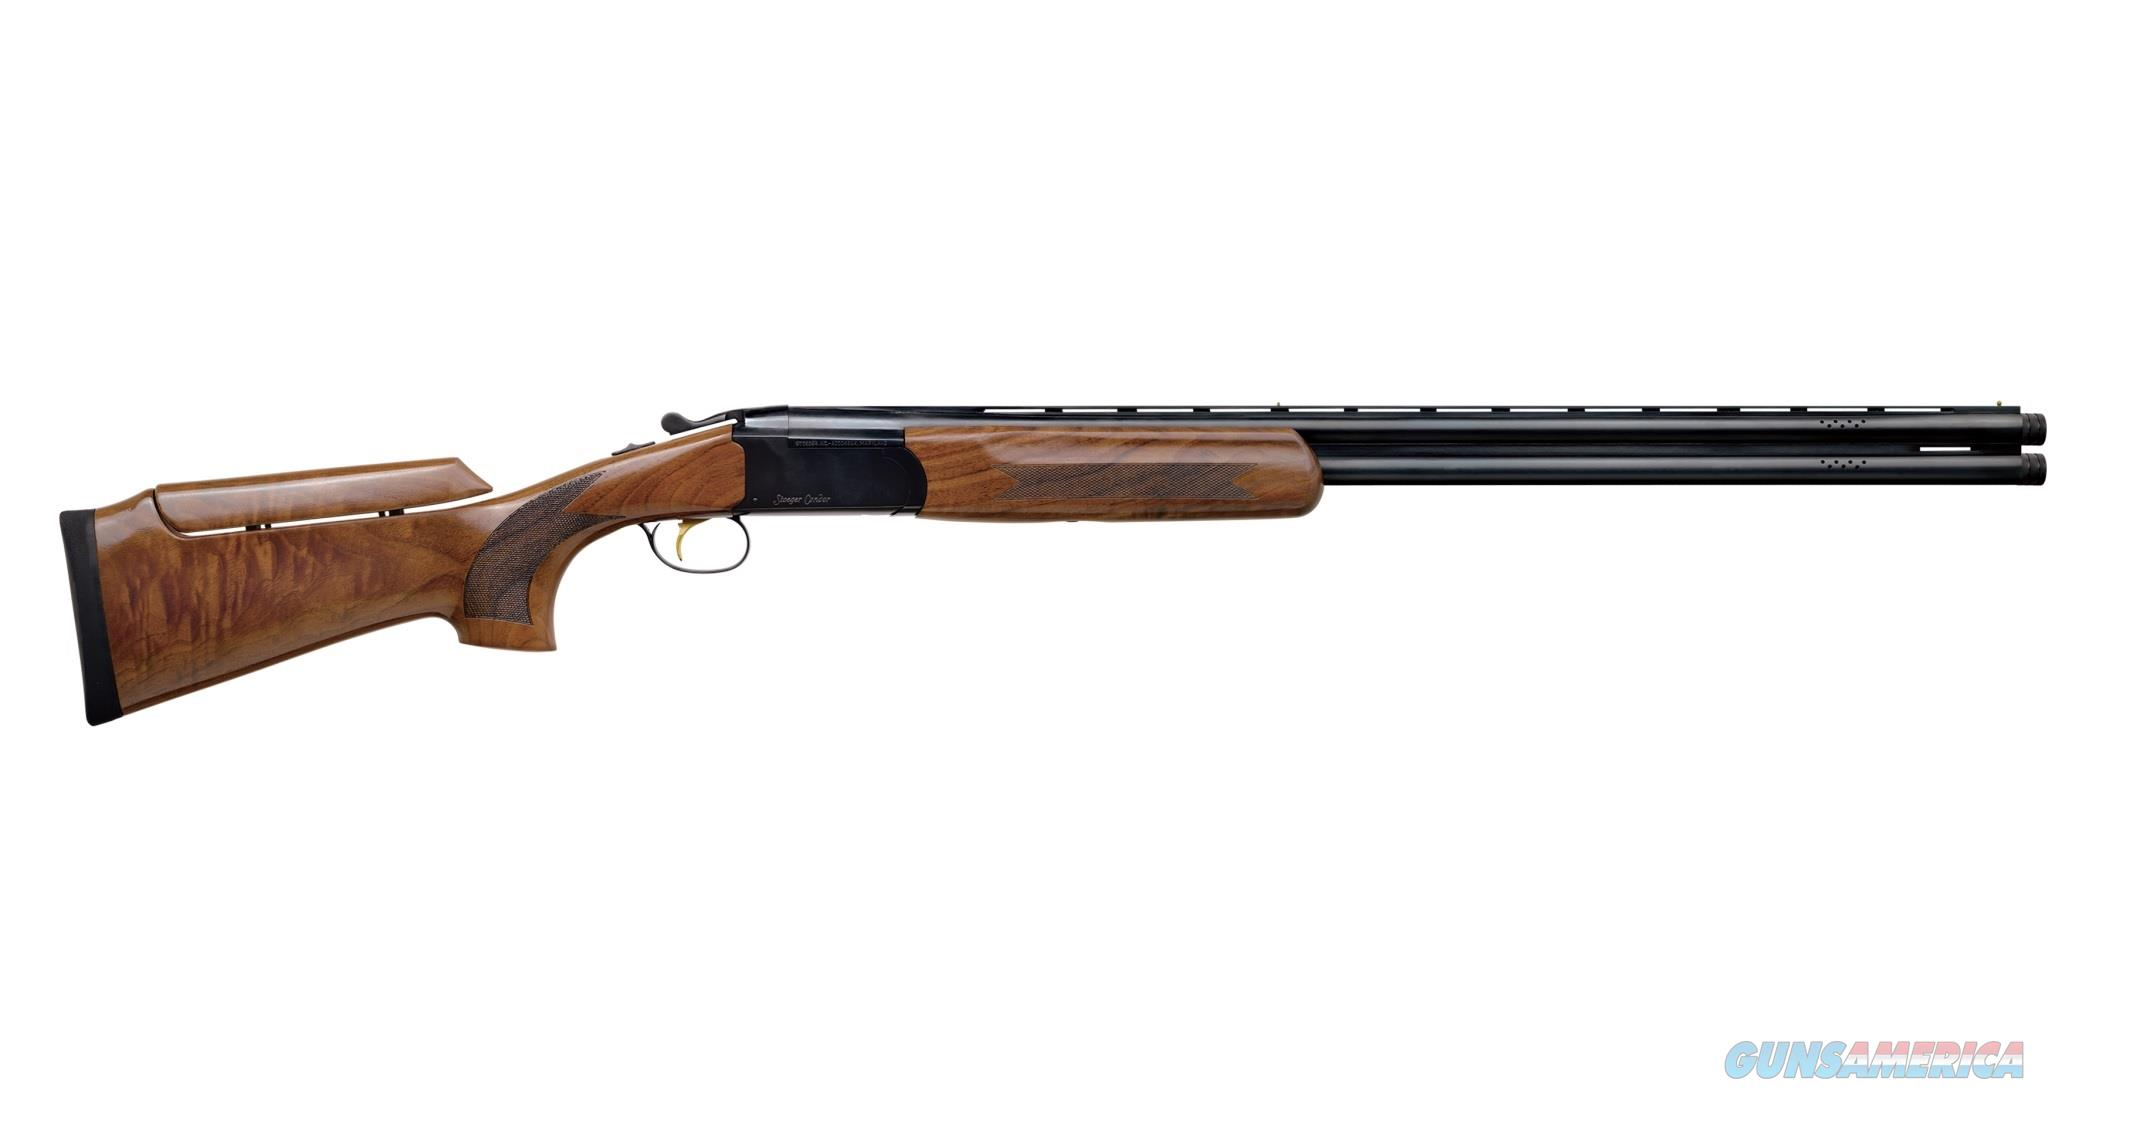 "Stoeger Condor Competition O/U 12 Gauge 30"" 31045   Guns > Shotguns > Stoeger Shotguns"